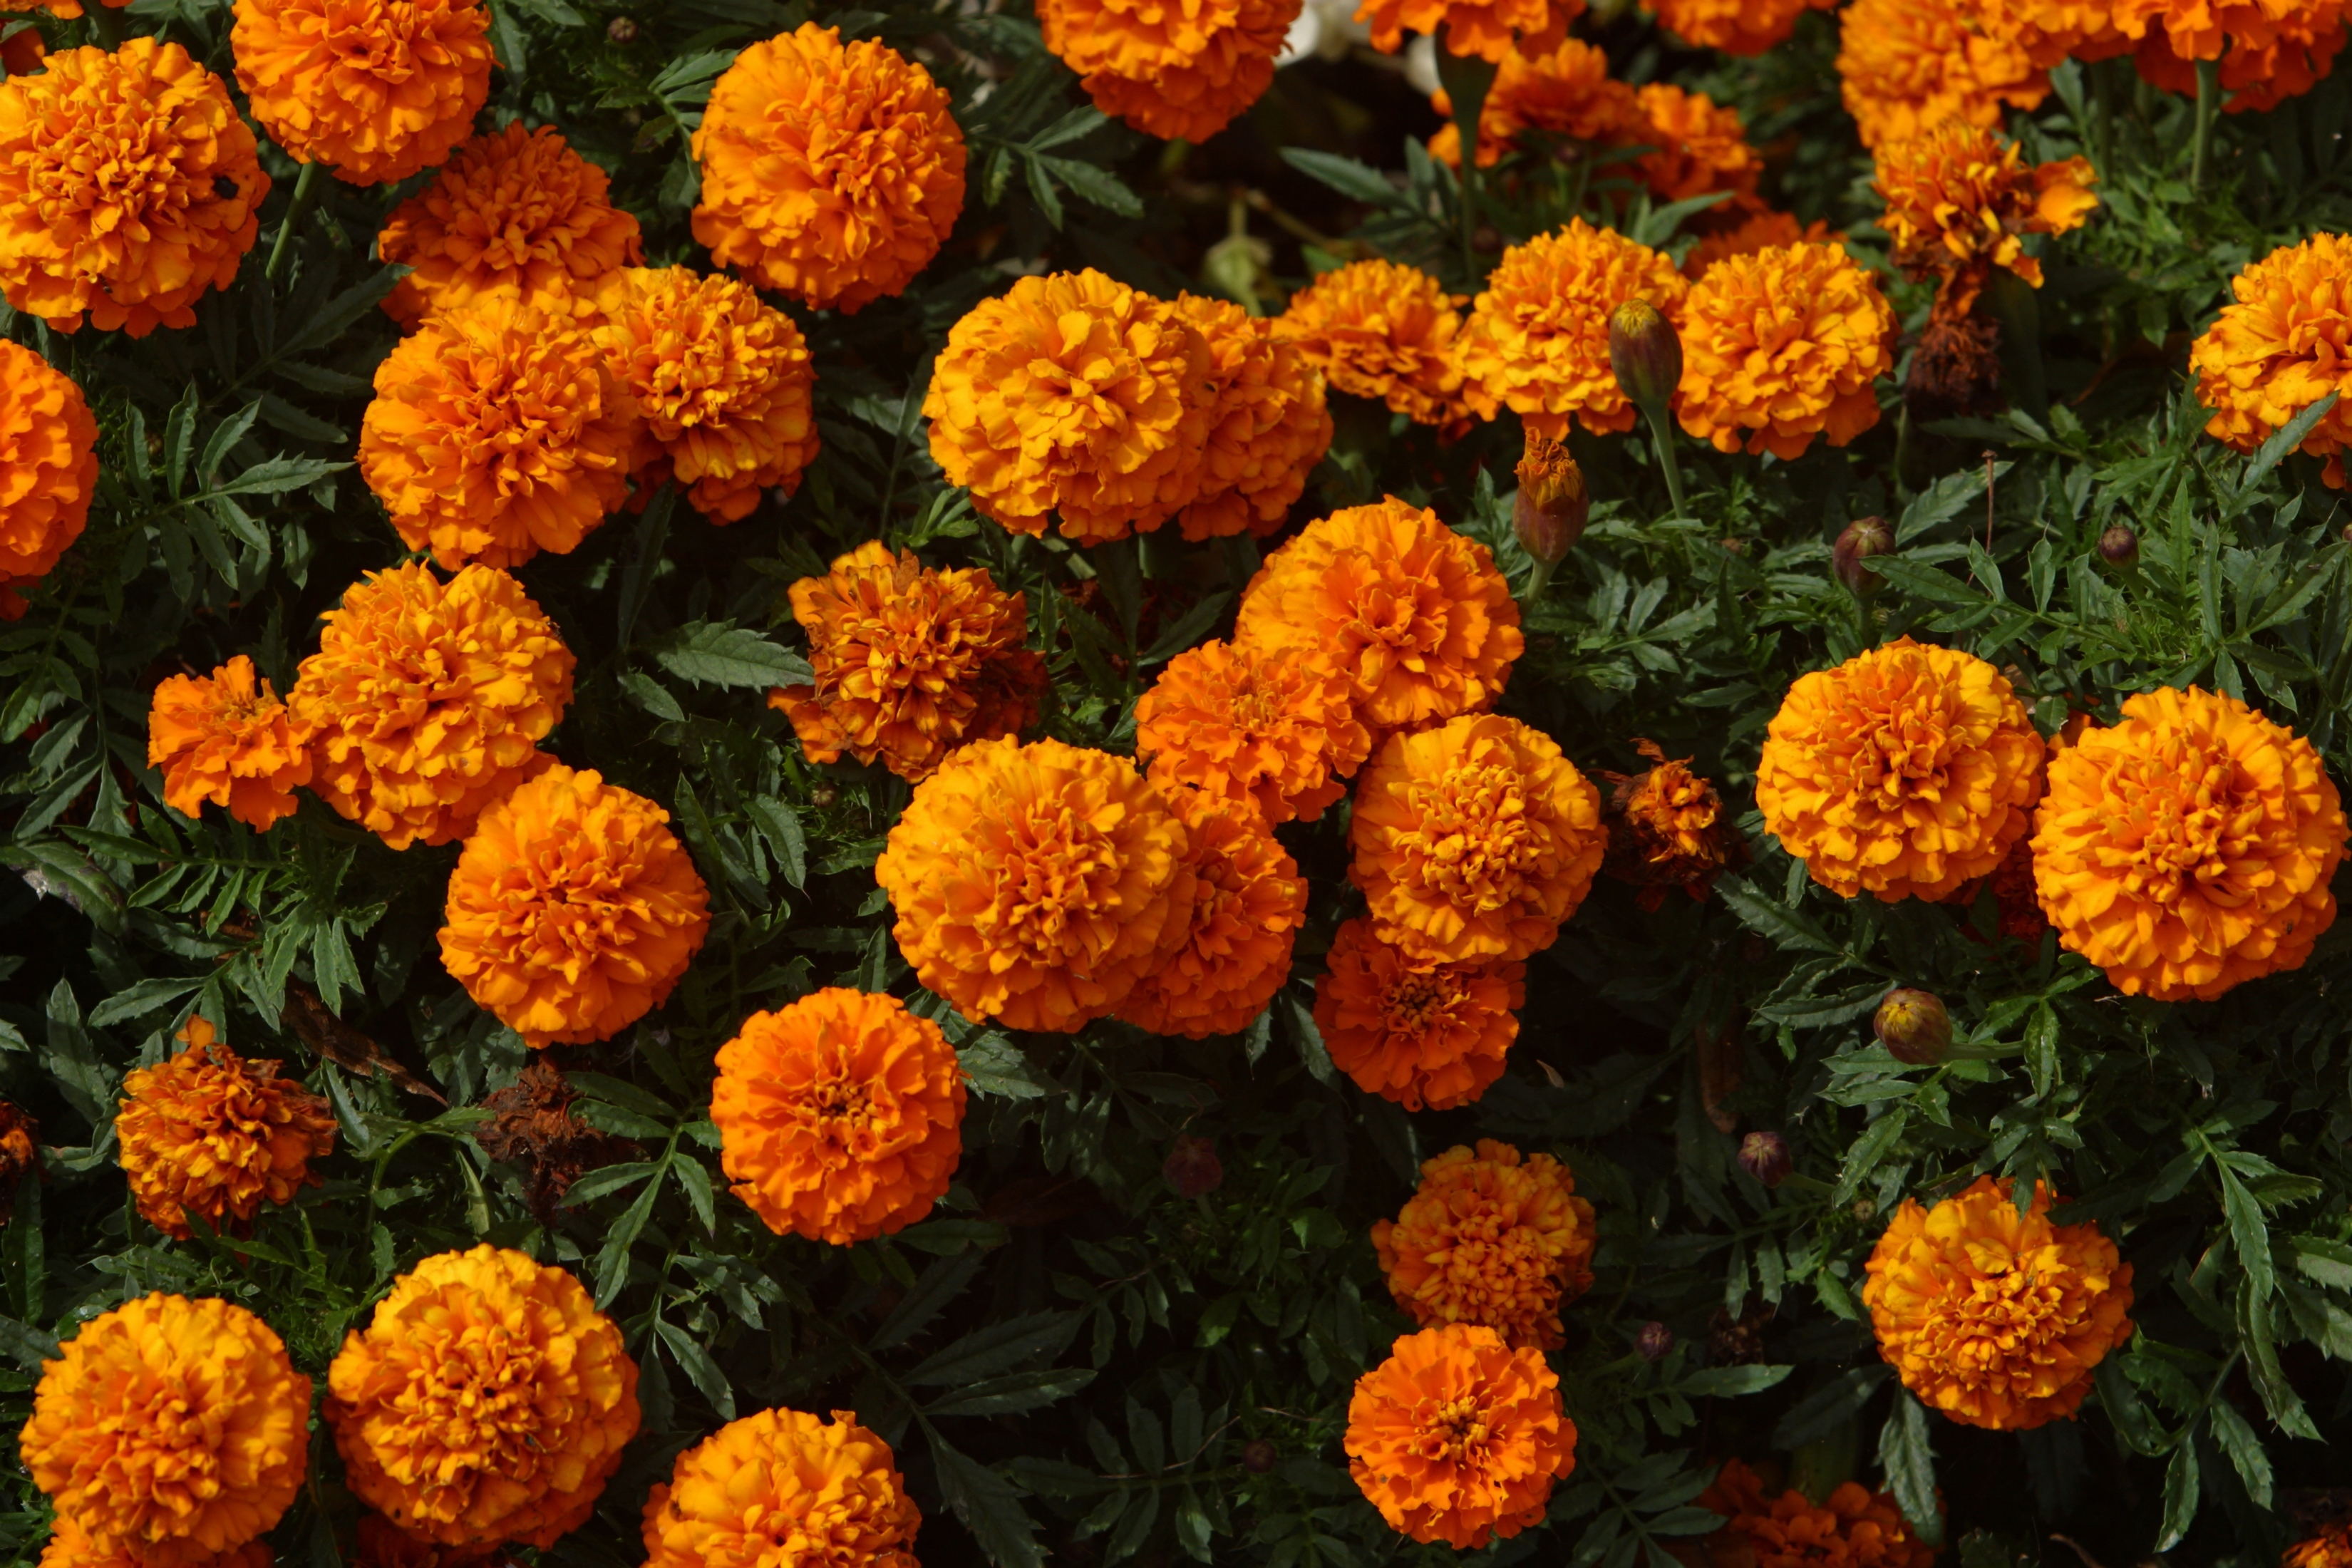 How to plant marigolds in vegetable gardens home guides sf gate - Like that garten ...